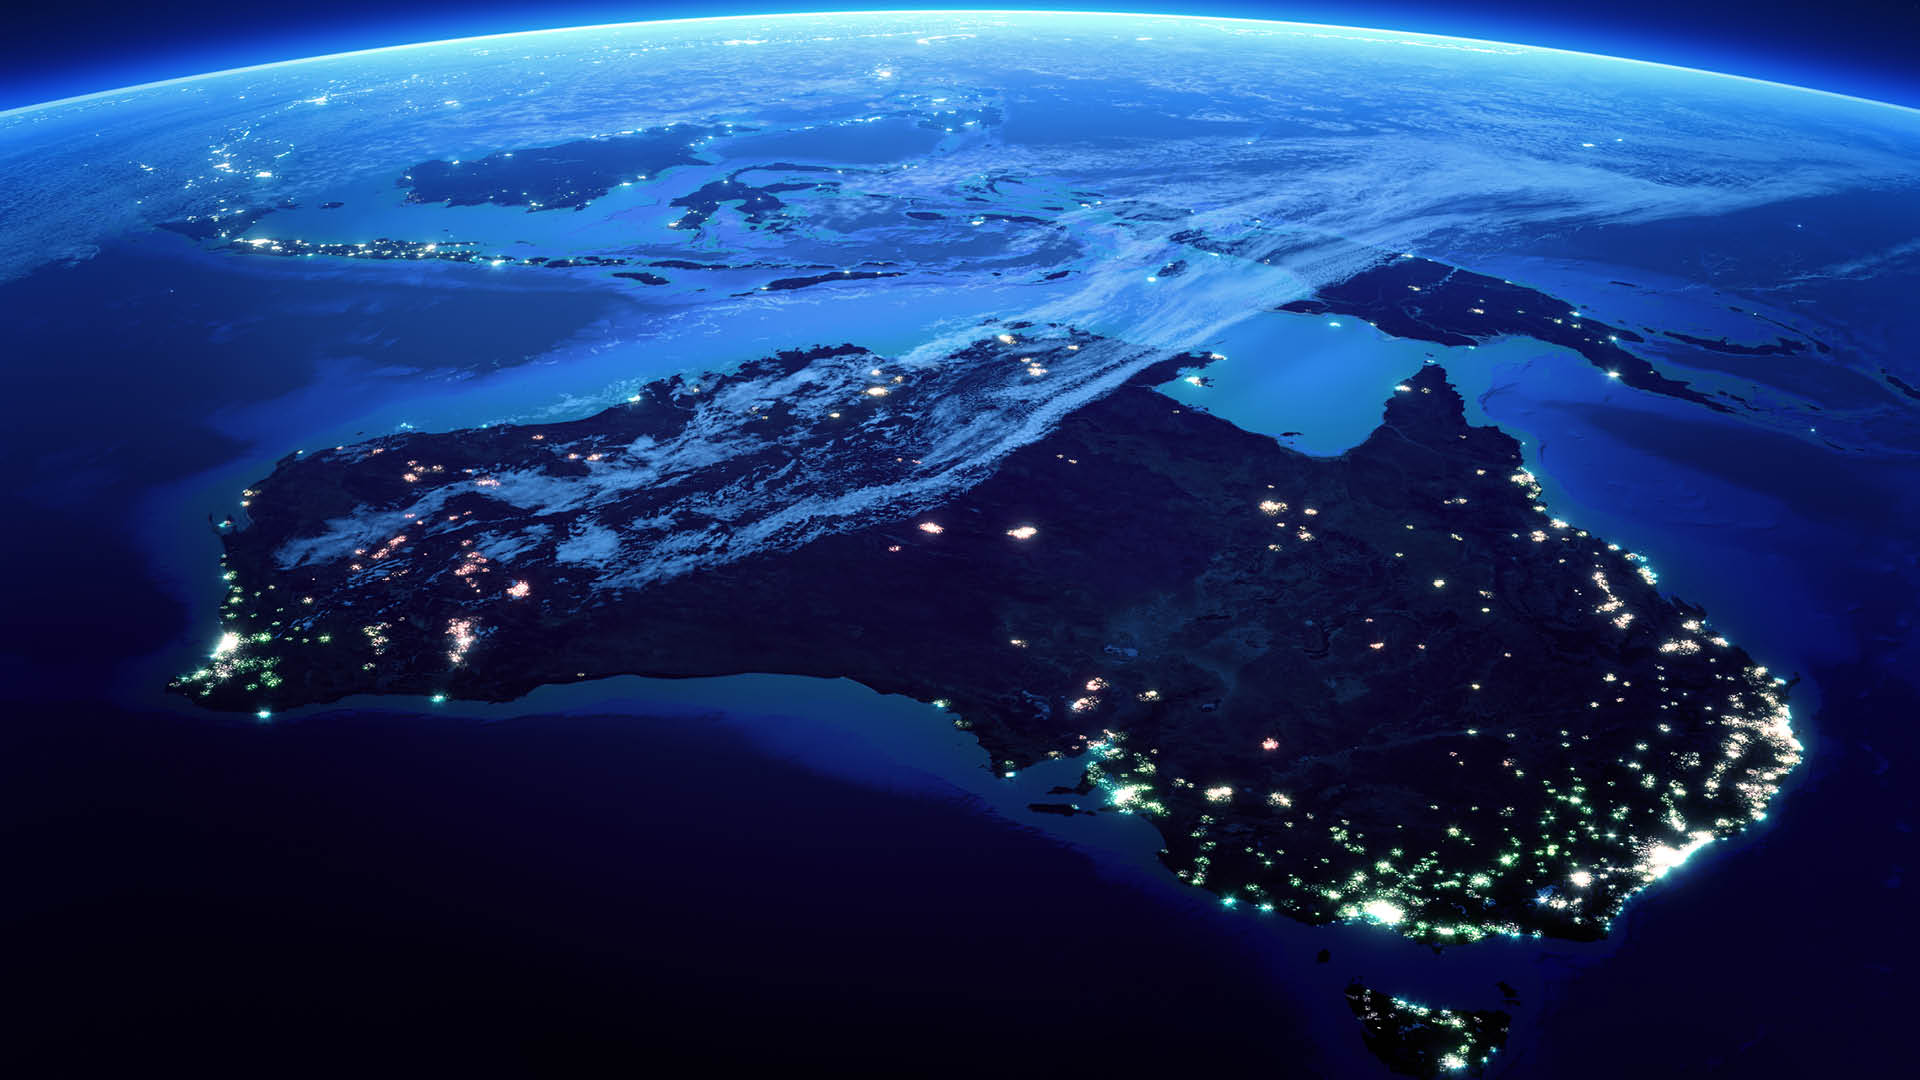 Australia-globe-earth-lights-night-blue